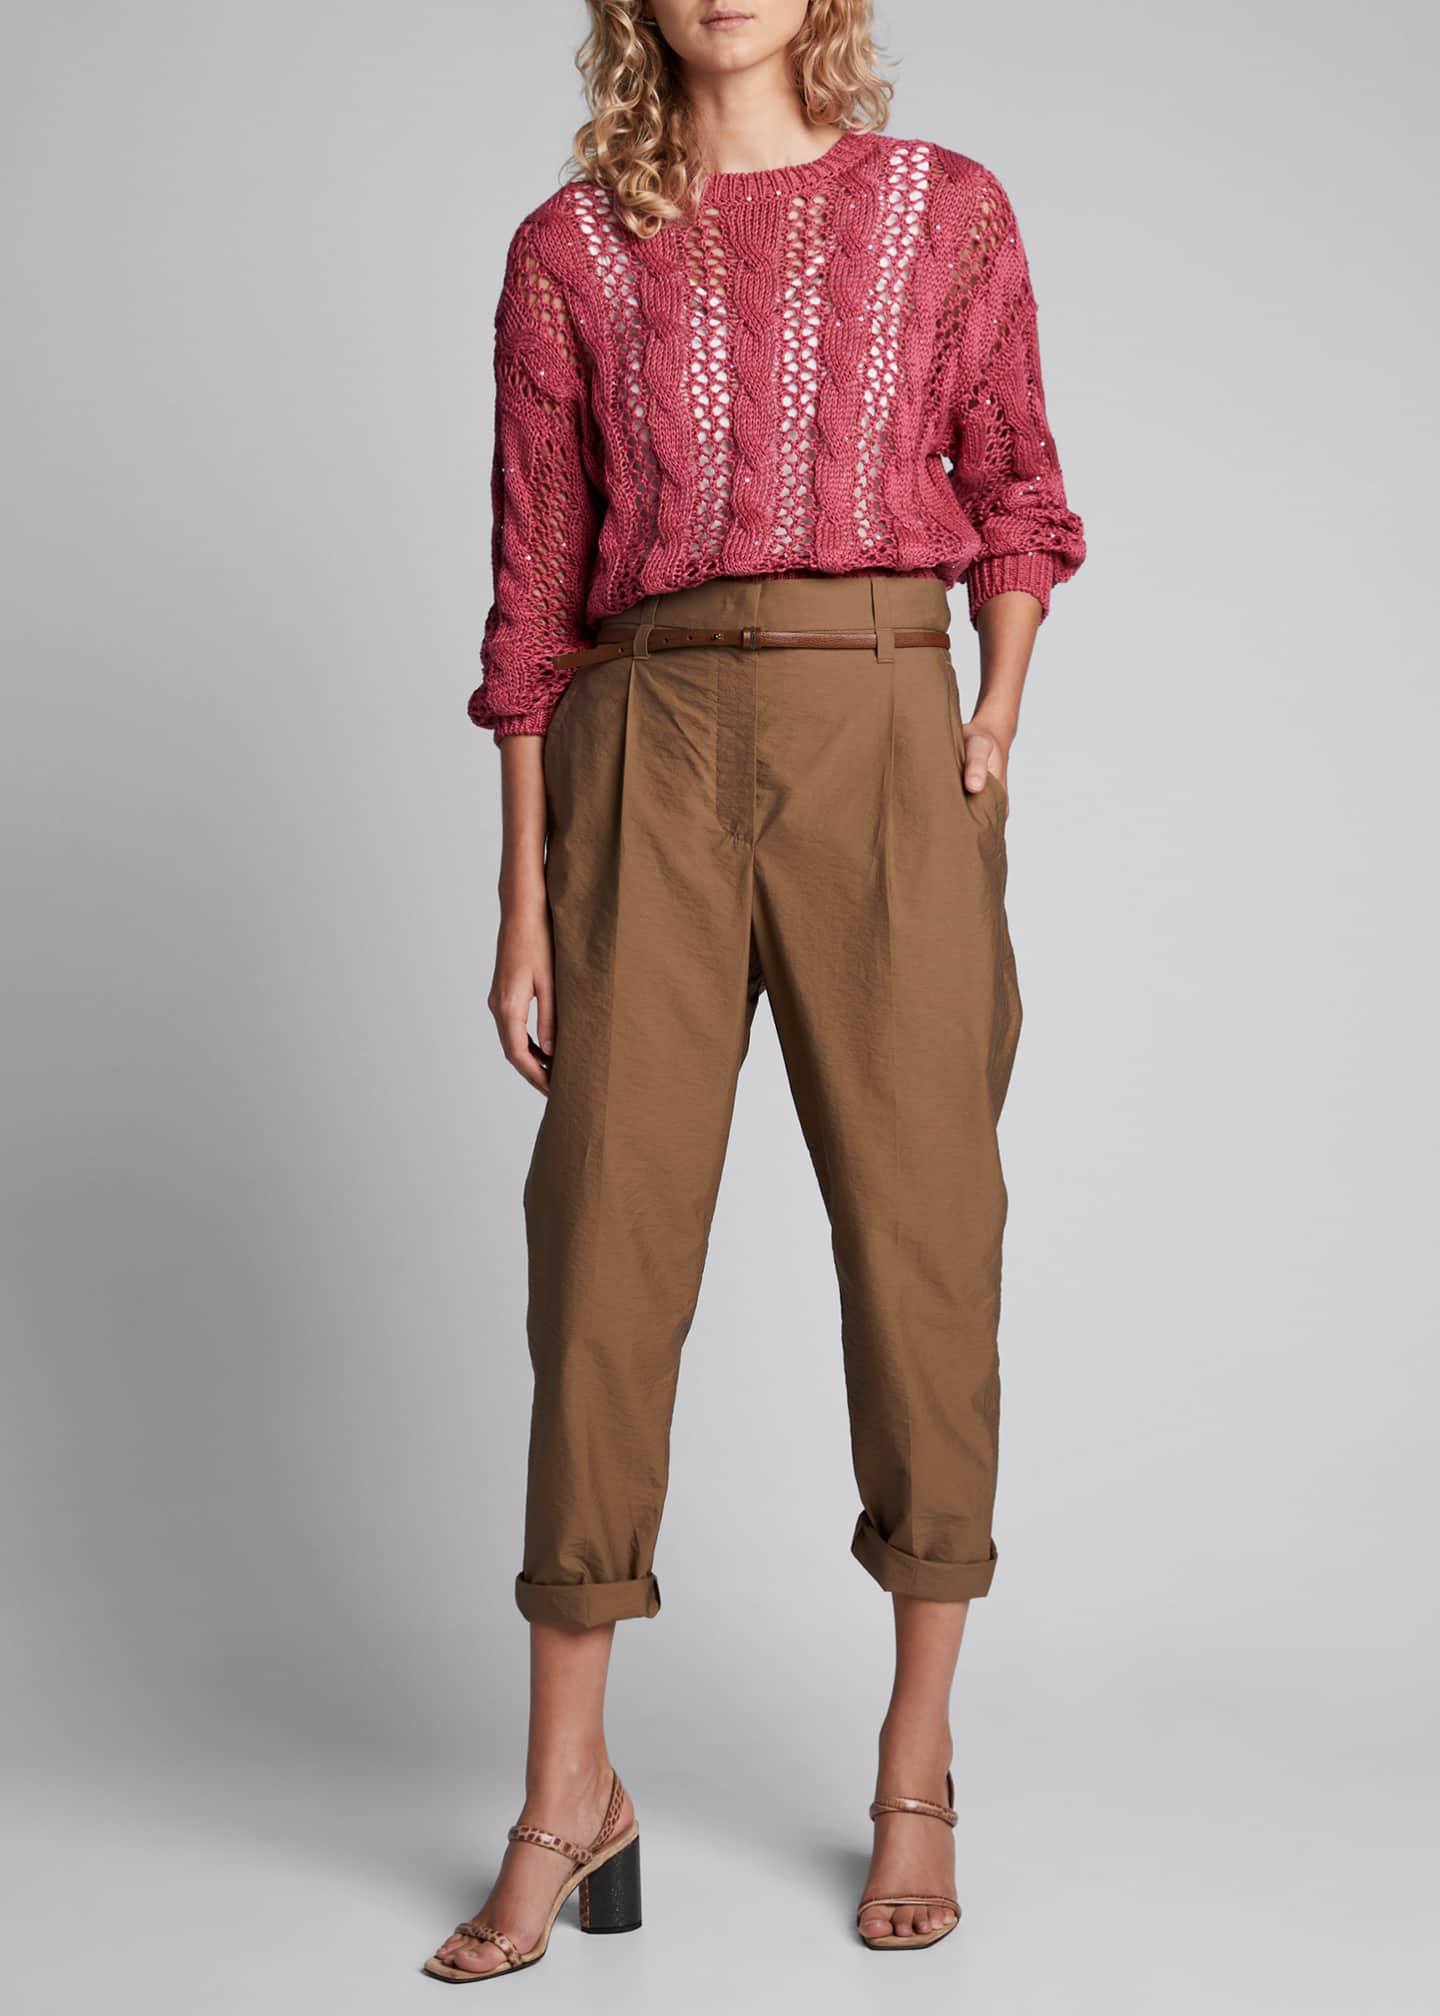 Brunello Cucinelli Open-Weave Cable-Knit Sweater